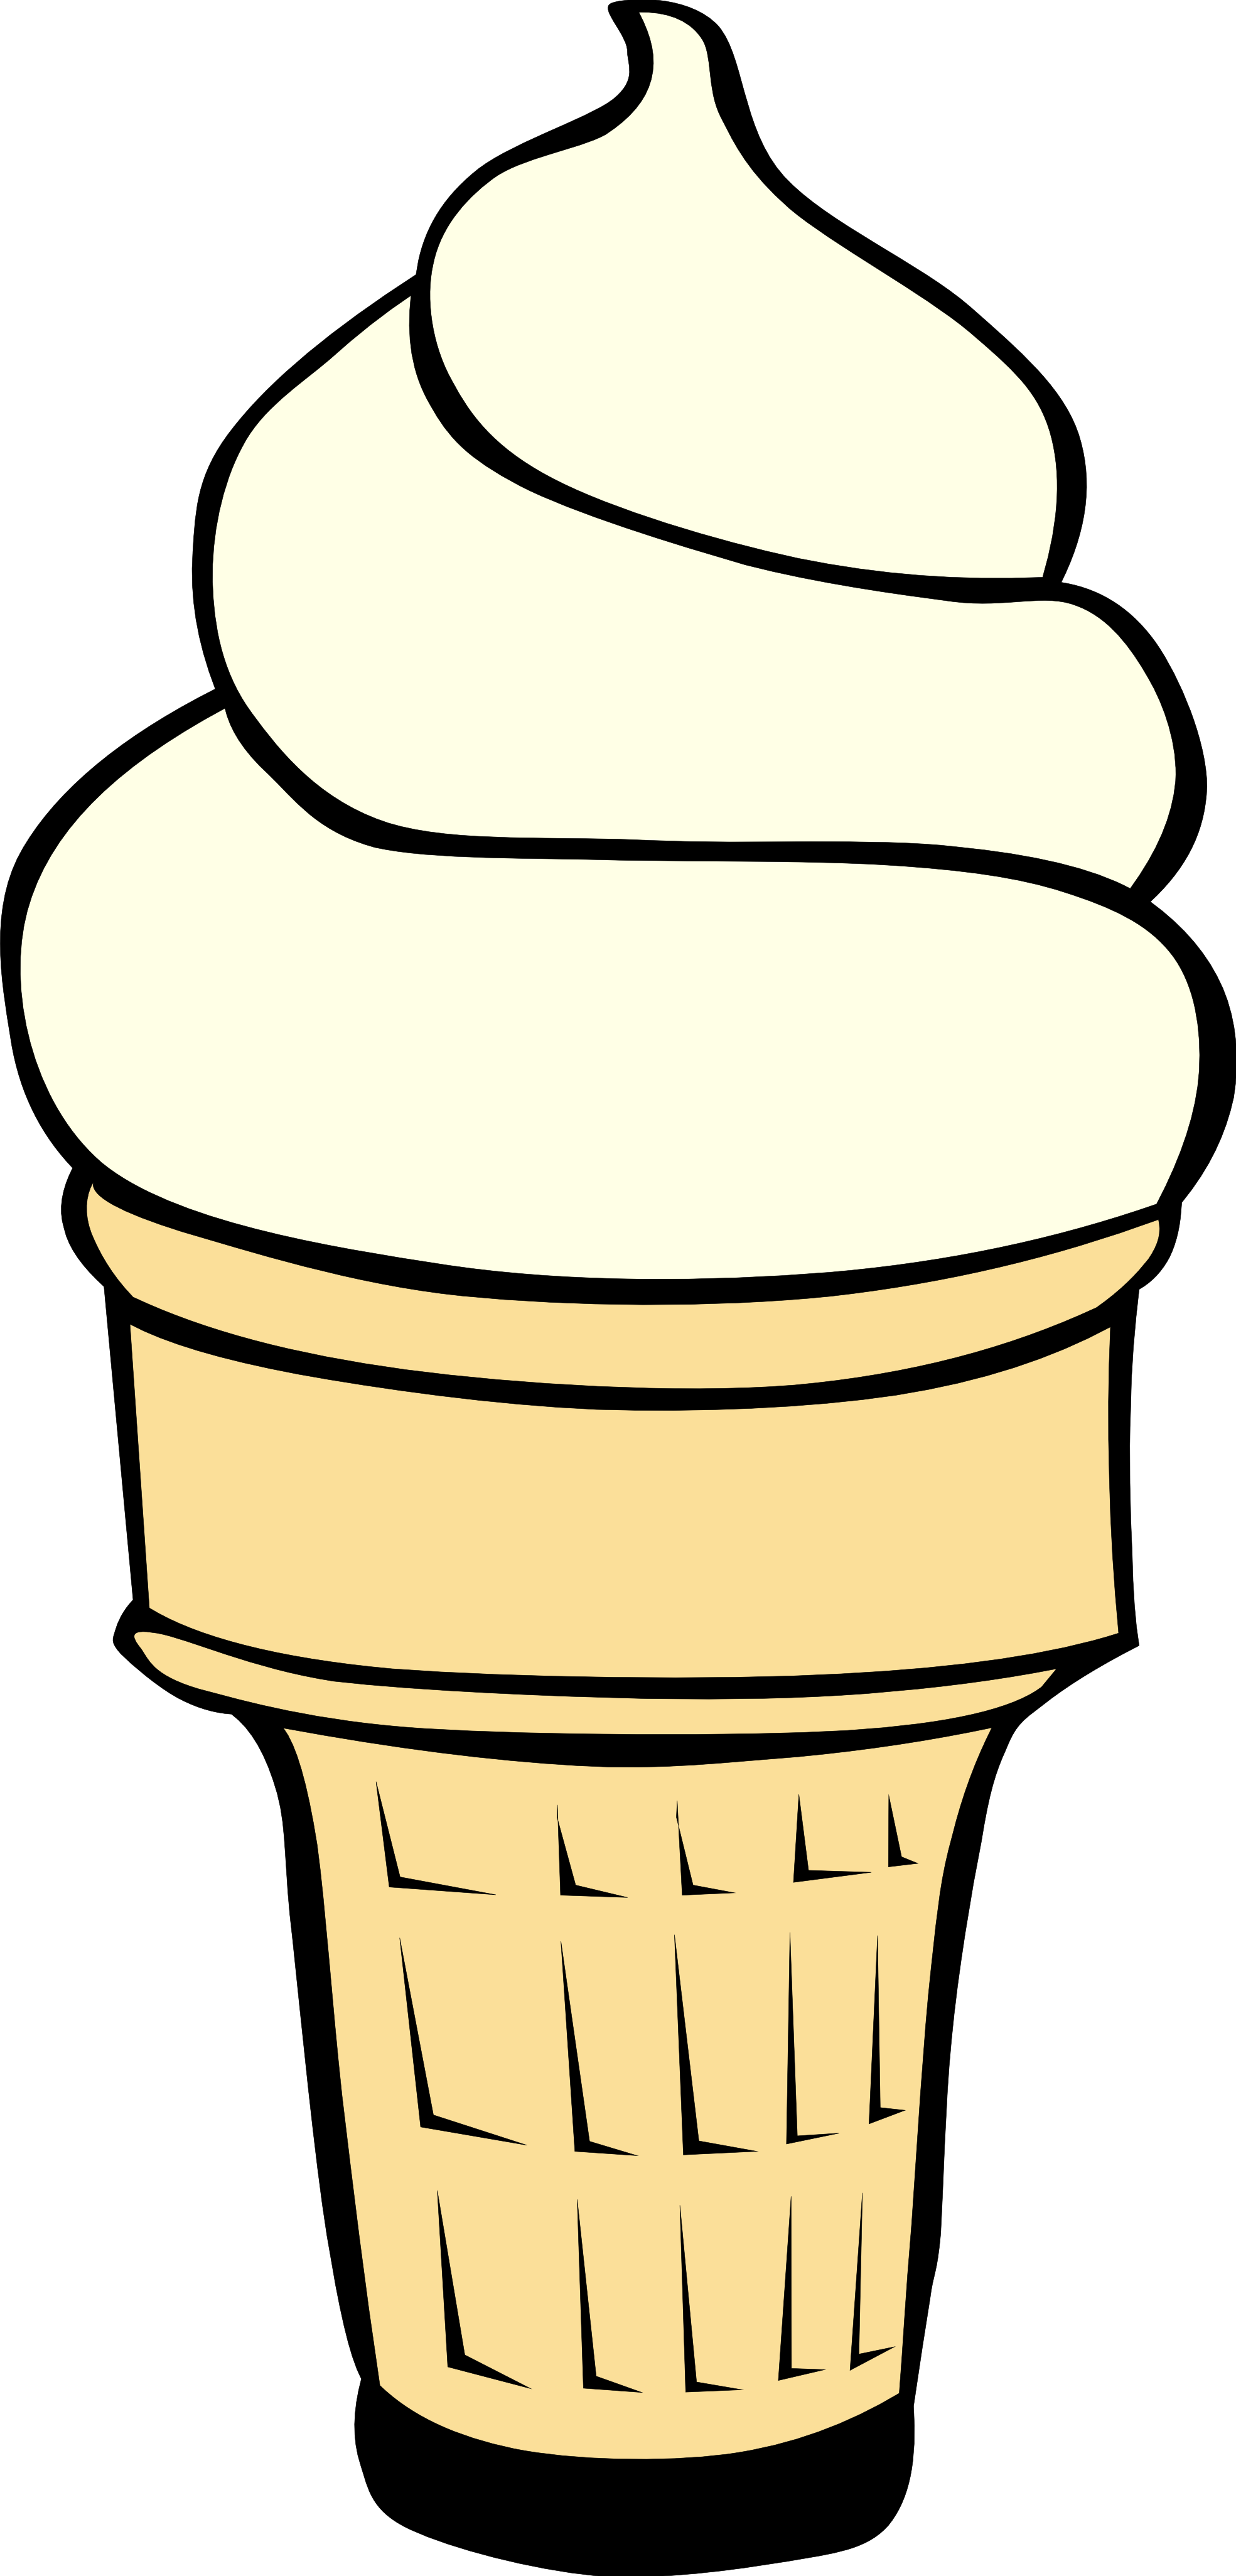 ice cream cone clipart-ice cream cone clipart-19